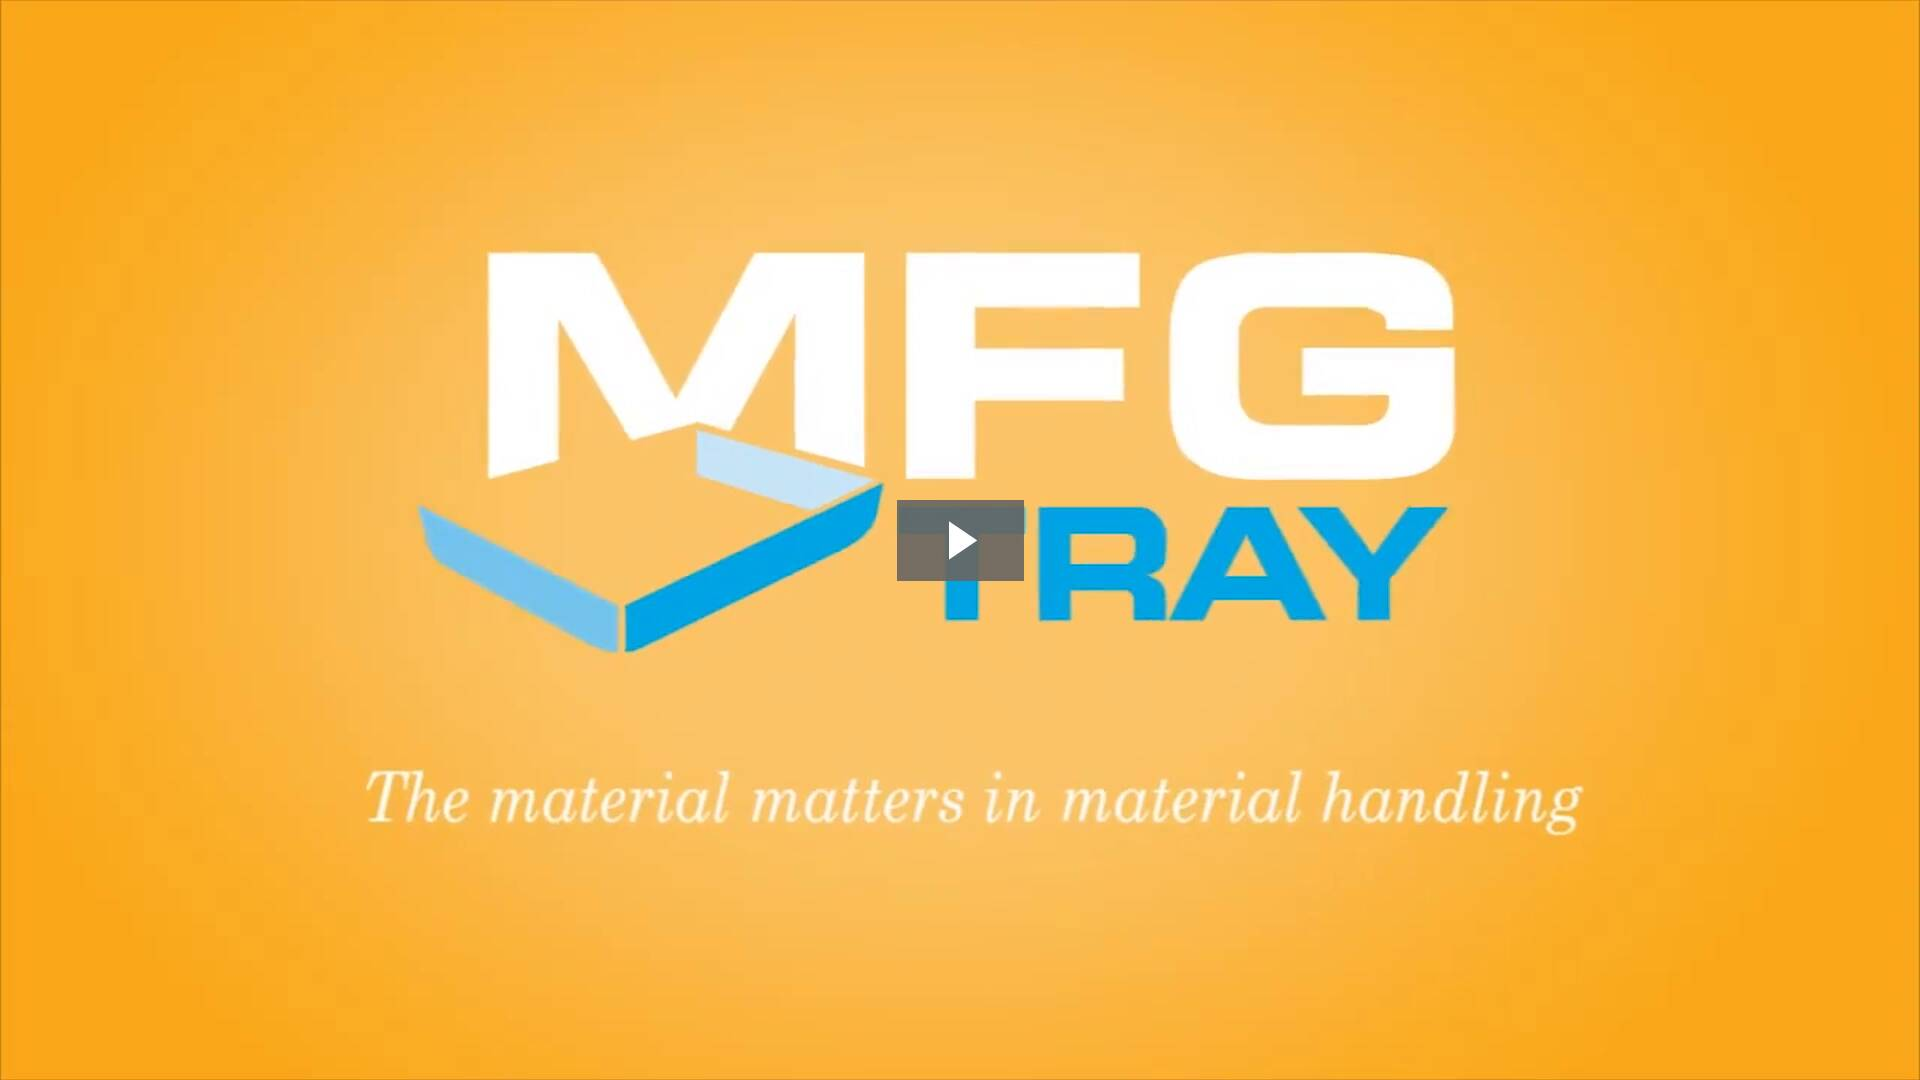 Fiberglass Material Handling Video by MFG Tray